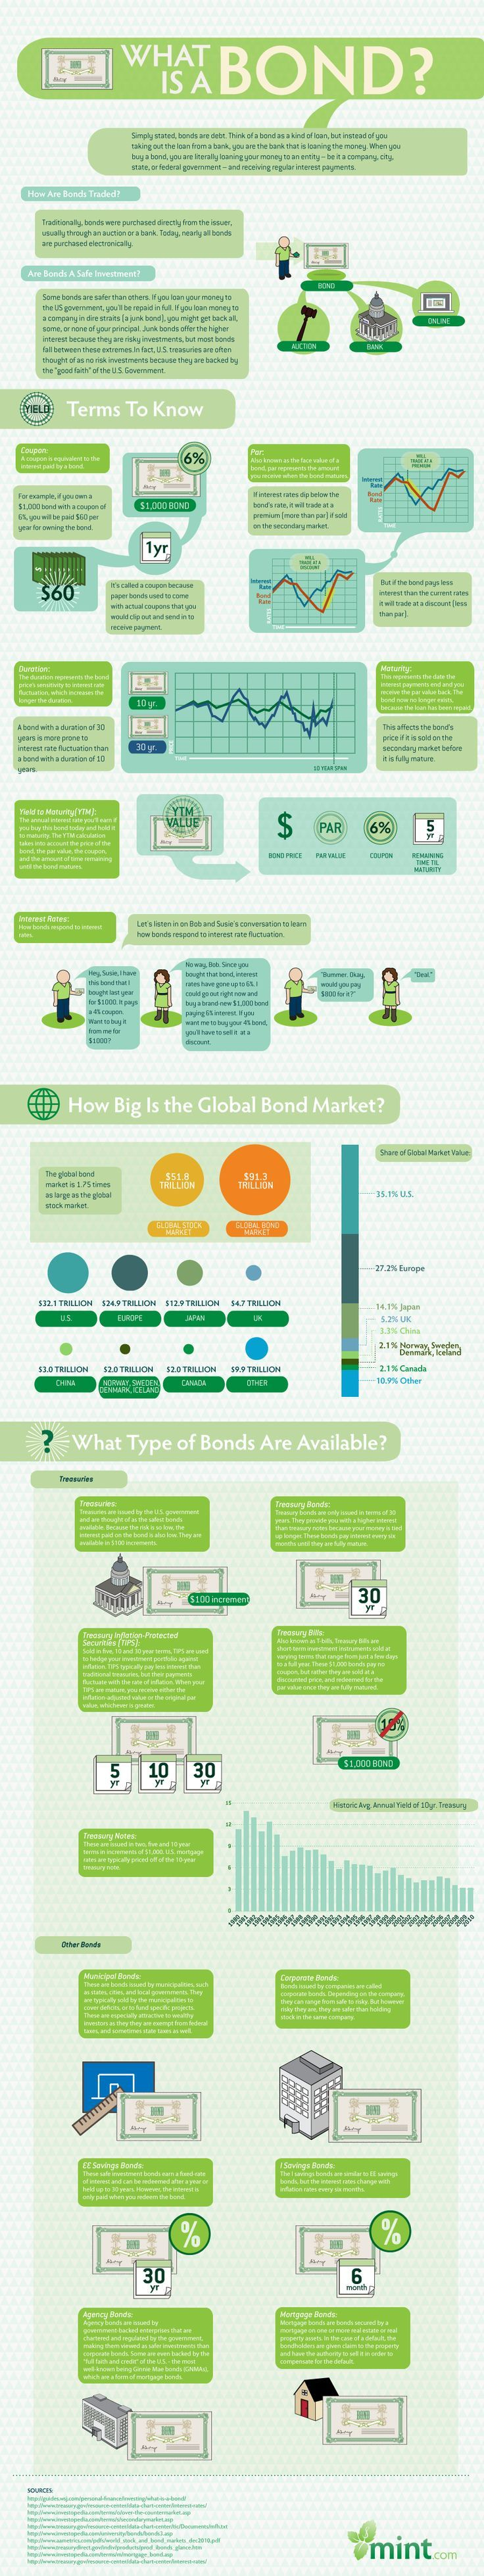 Great infographic from Mint.com discussing what a bond is.